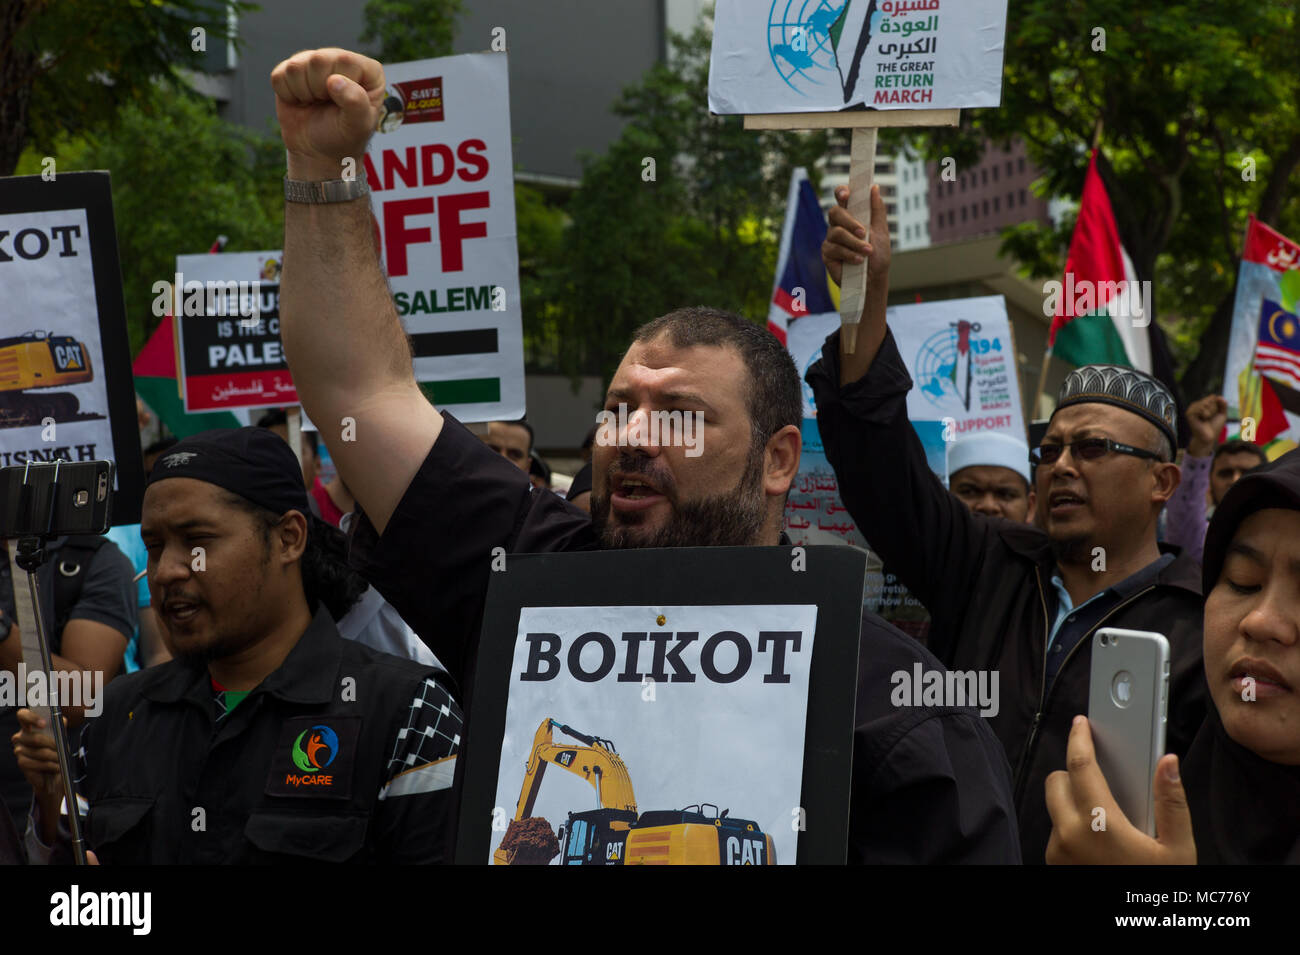 Kuala Lumpur, Malaysia. 13th Apr, 2018. Hundreds Malaysian and Palestinian protesters march to the US embassy in Kuala Lumpur, Malaysia on April 13, 2018 during a rally of Palestinian Land Day. The protests are being held around the world. Credit: Chris JUNG/Alamy Live News - Stock Image